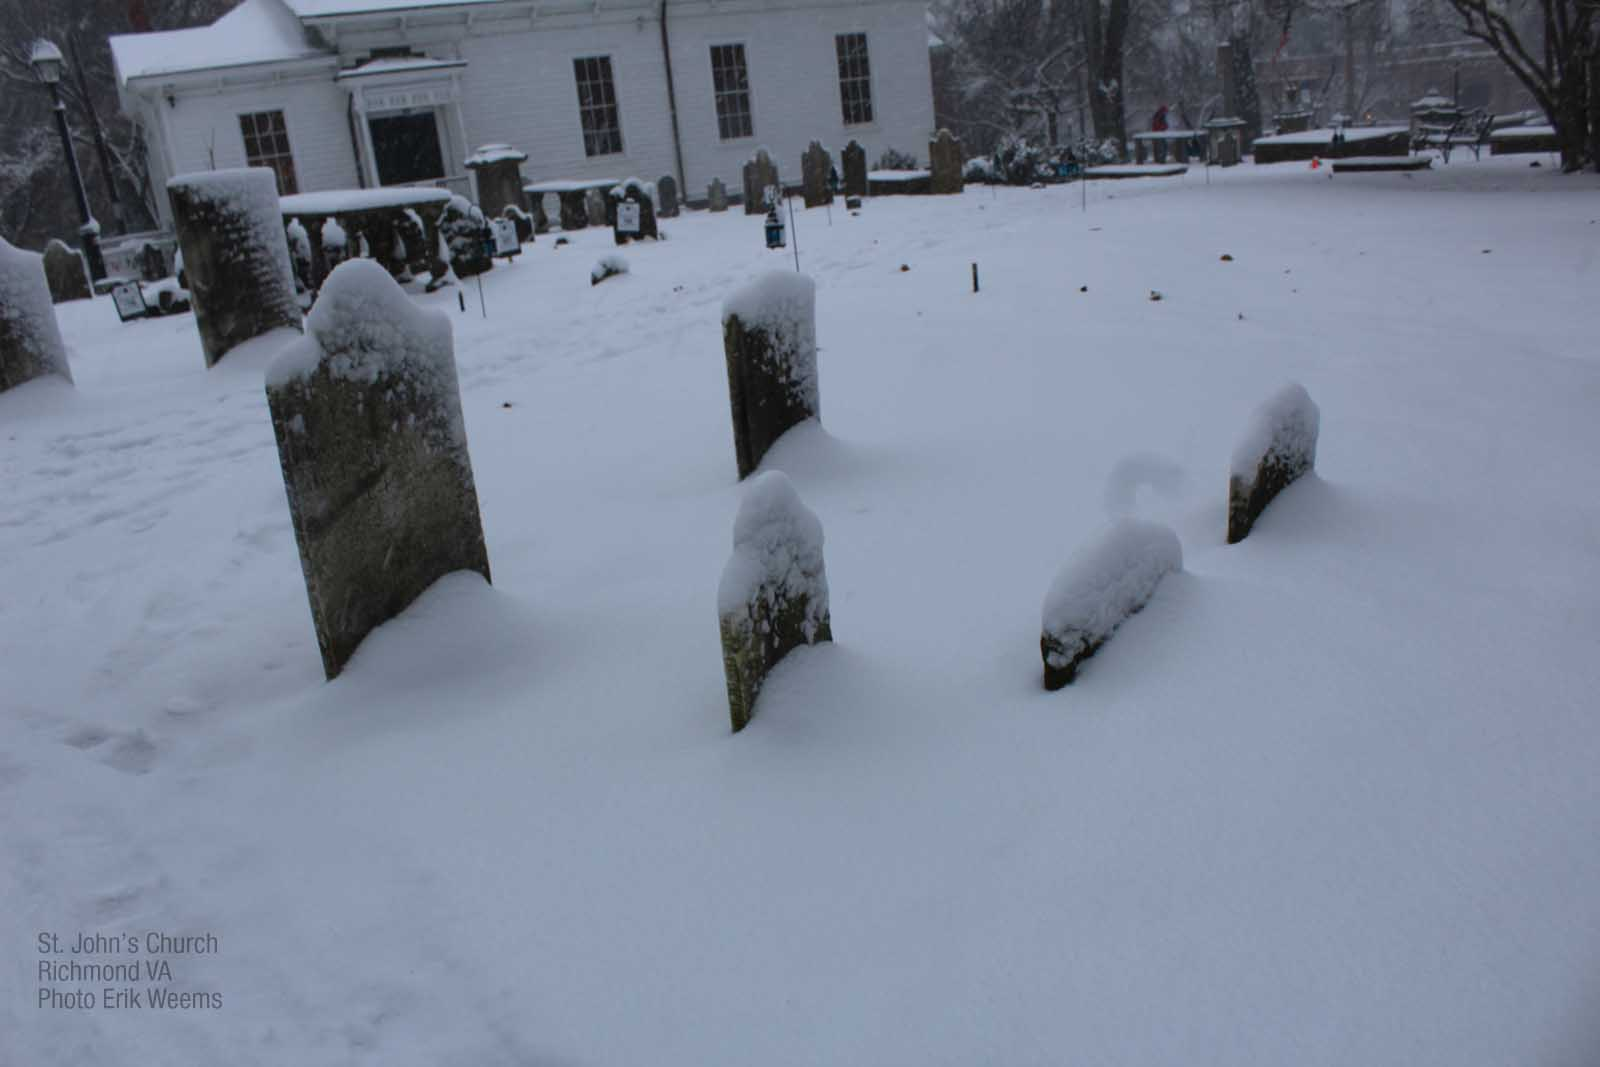 Enlarged image - St Johns Church Graves in the Snow